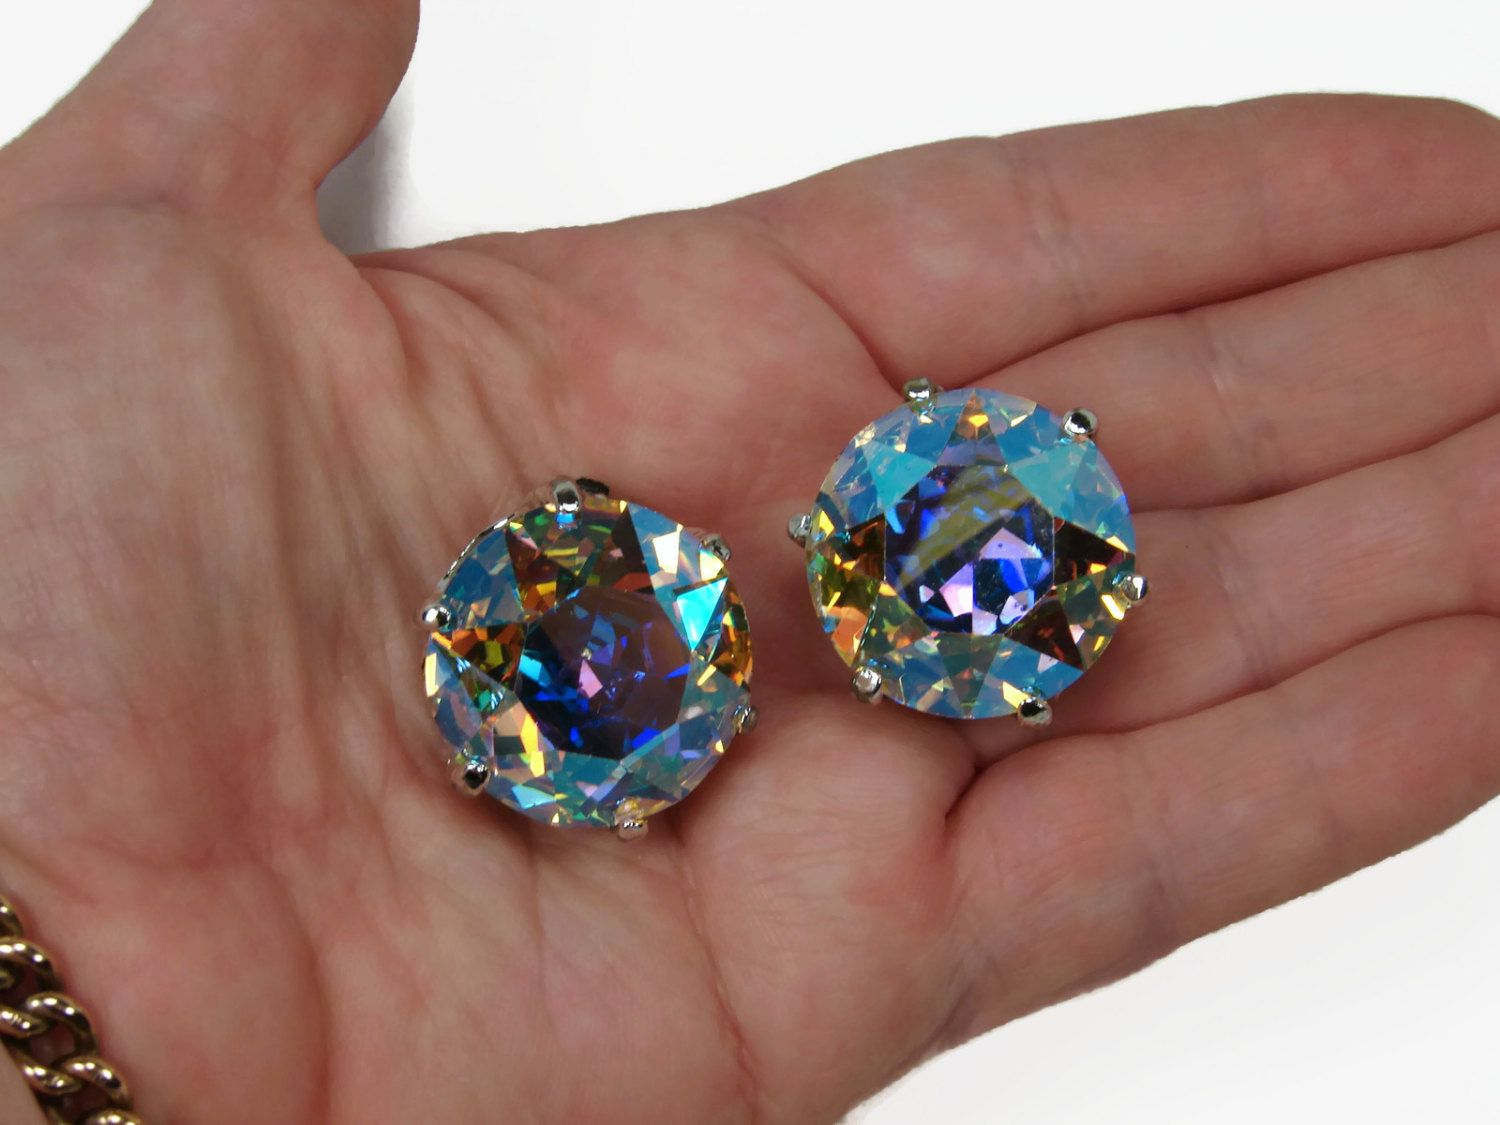 Huge Rhinestone Earrings Aurora Borealis Head Light Clip On Vintage Jewelry Runway By Vintagegemz